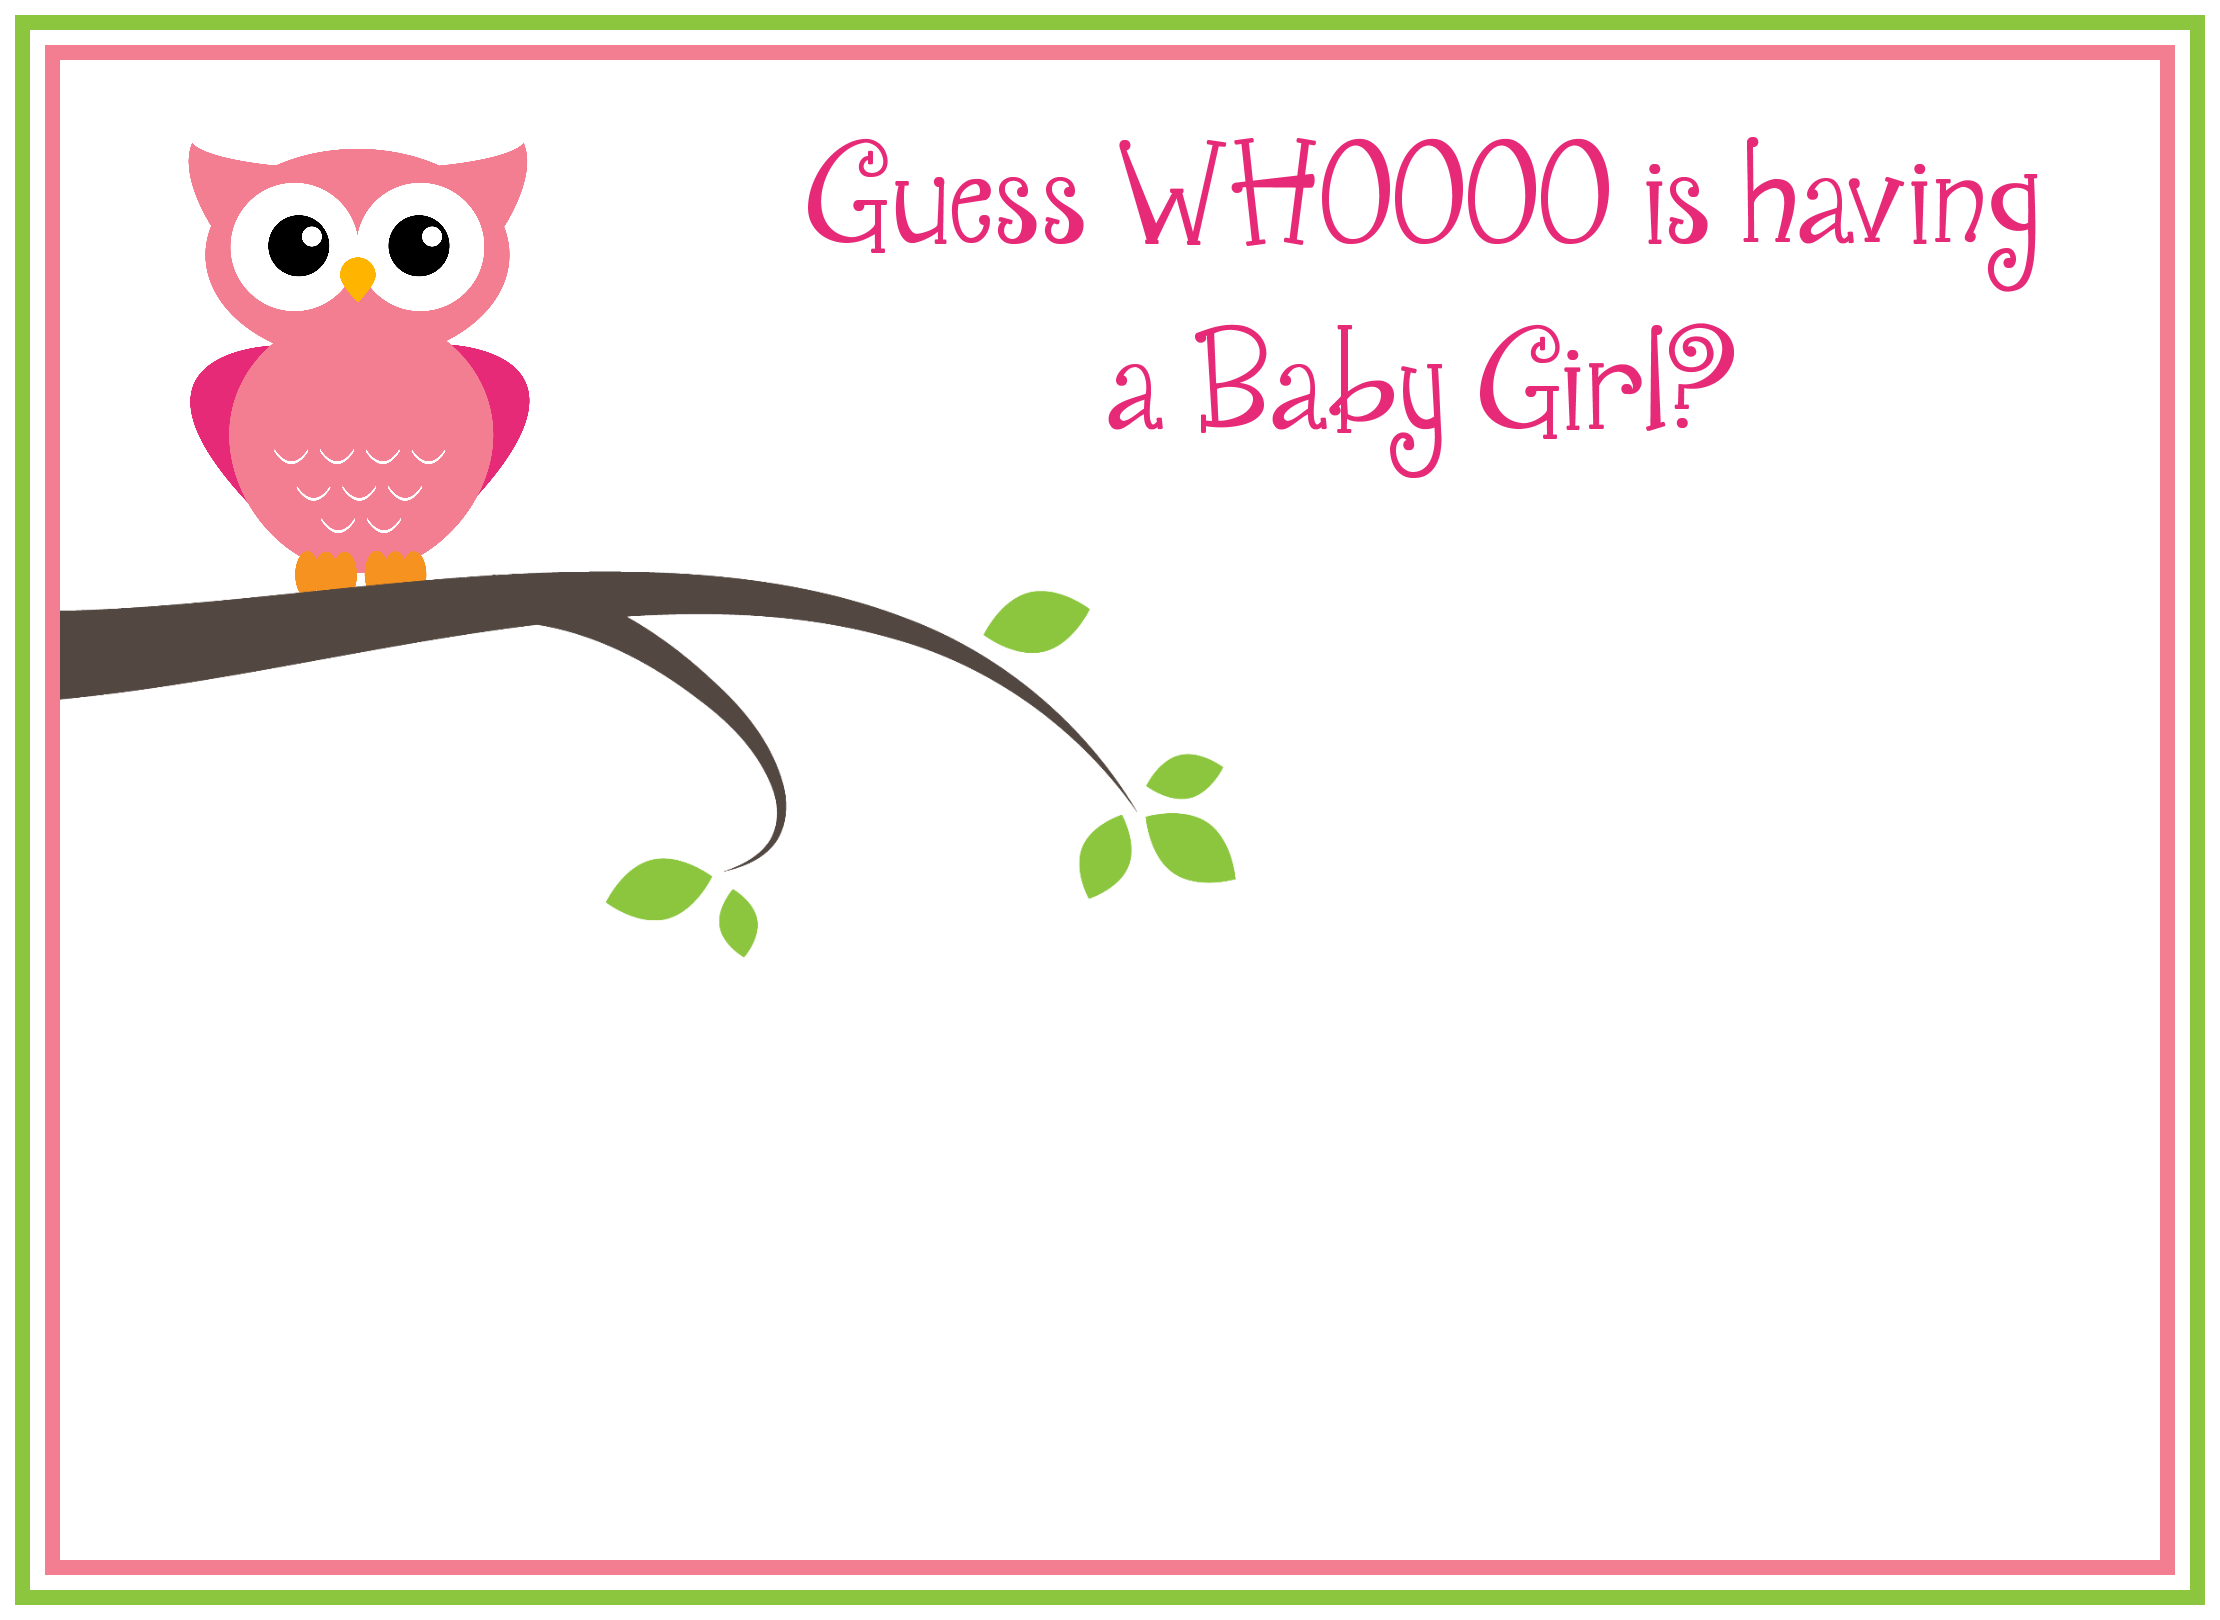 Free diy girl baby showers owls clipart clip black and white download Free diy girl baby showers owls clipart - ClipartFest clip black and white download